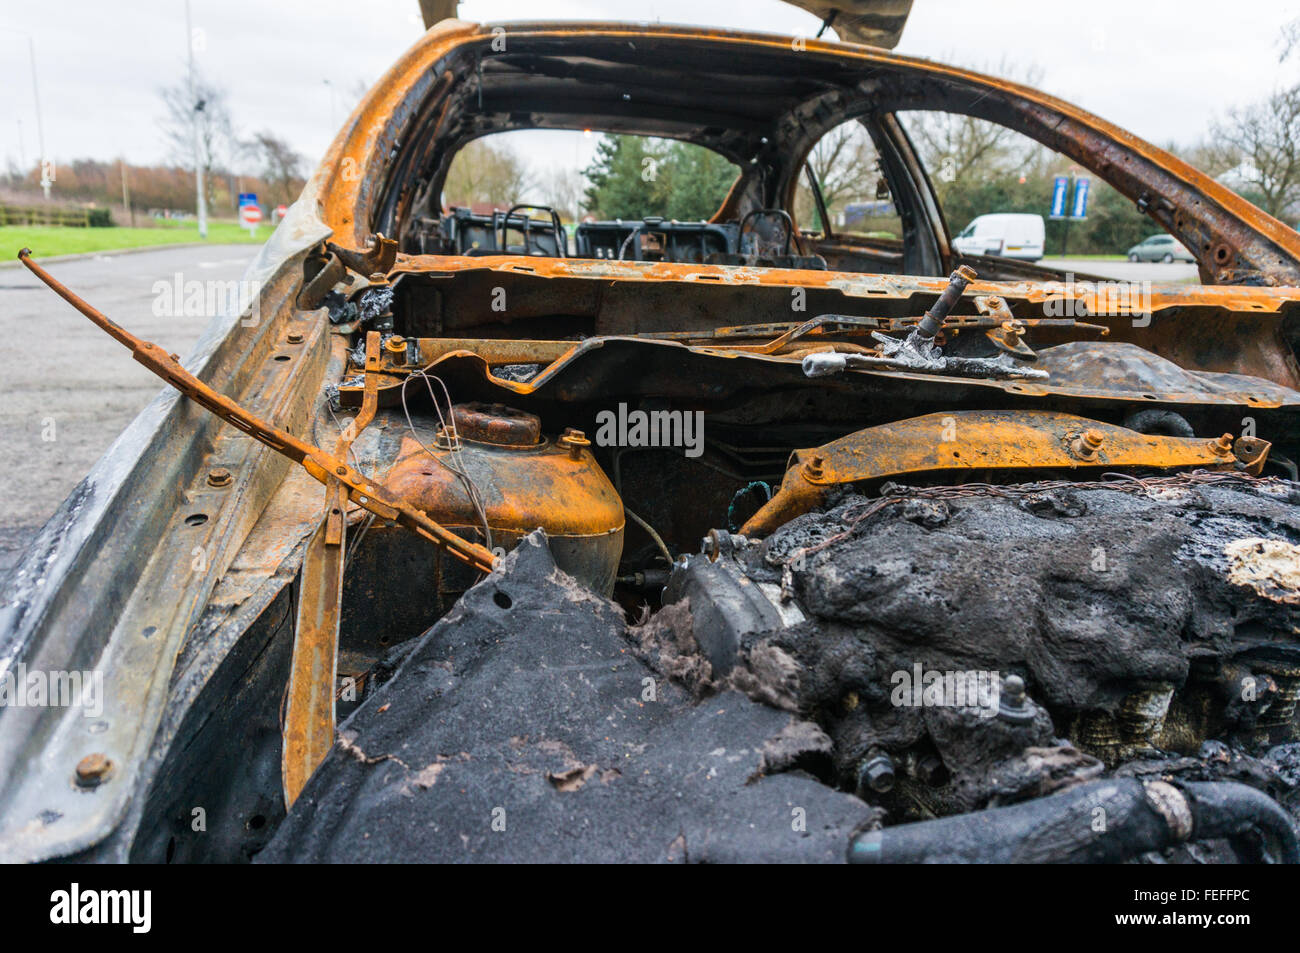 Abandoned fire damaged car Stock Photo